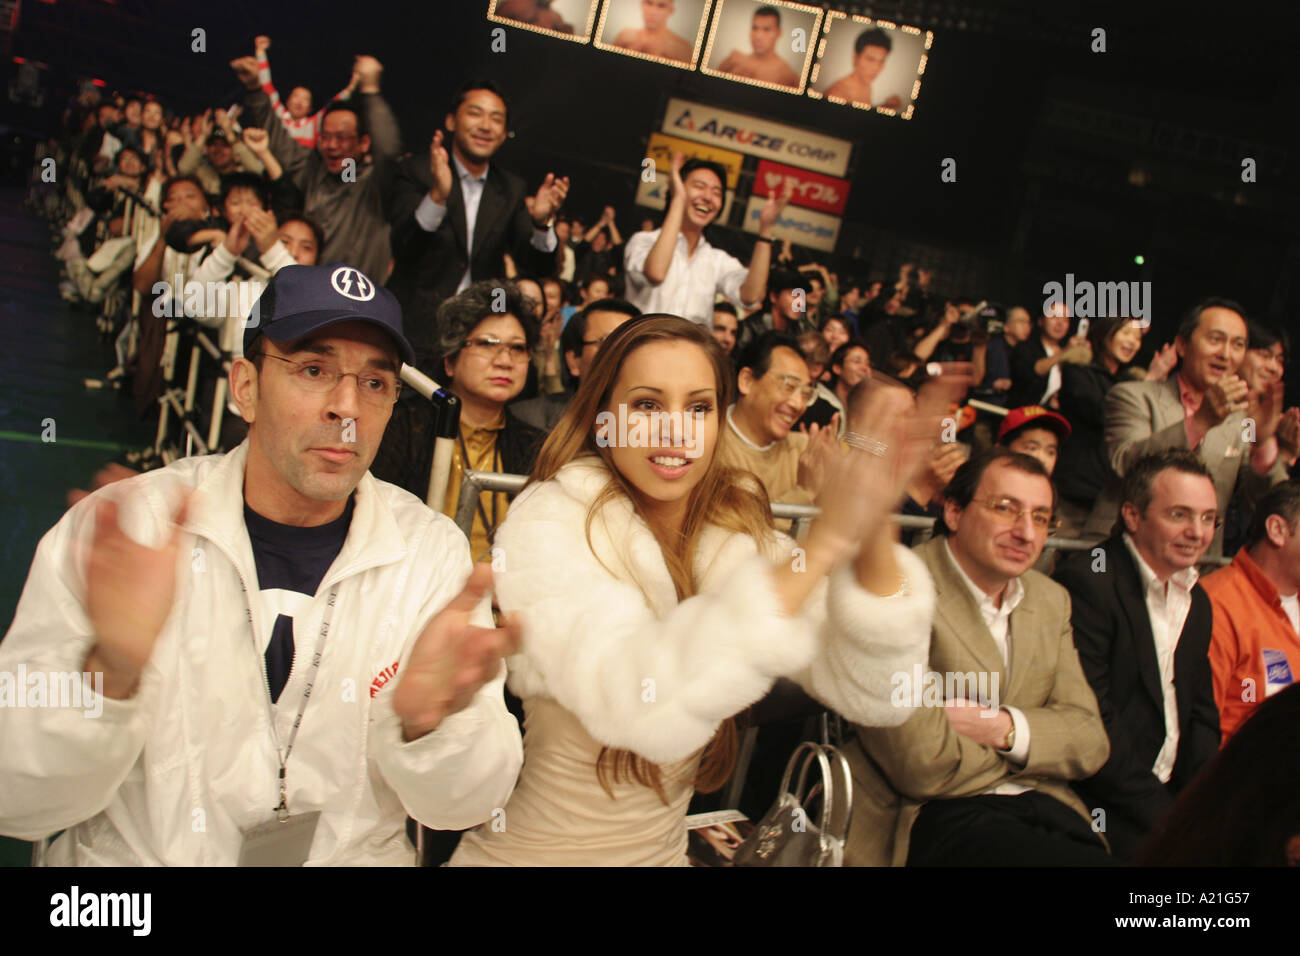 Supporters and guests of the fighters cheer during a match of the K 1 World GP 2004 held at Tokyo Dome Tokyo - Stock Image